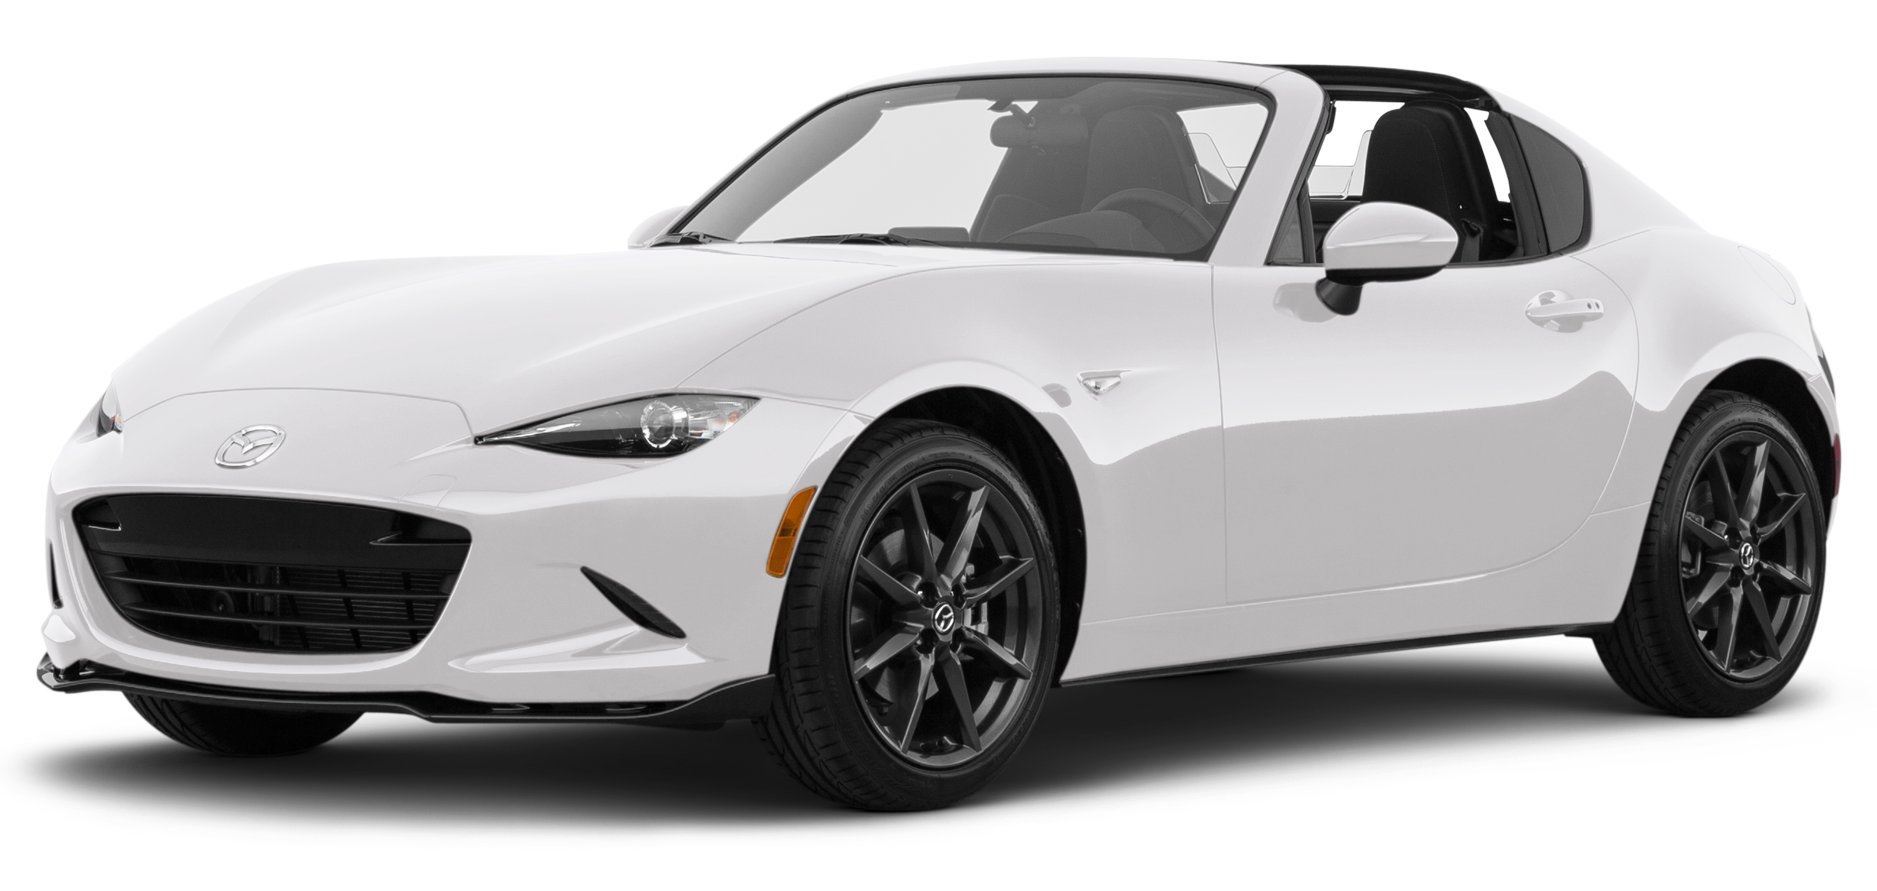 2017 mazda mx 5 miata reviews images and specs vehicles. Black Bedroom Furniture Sets. Home Design Ideas